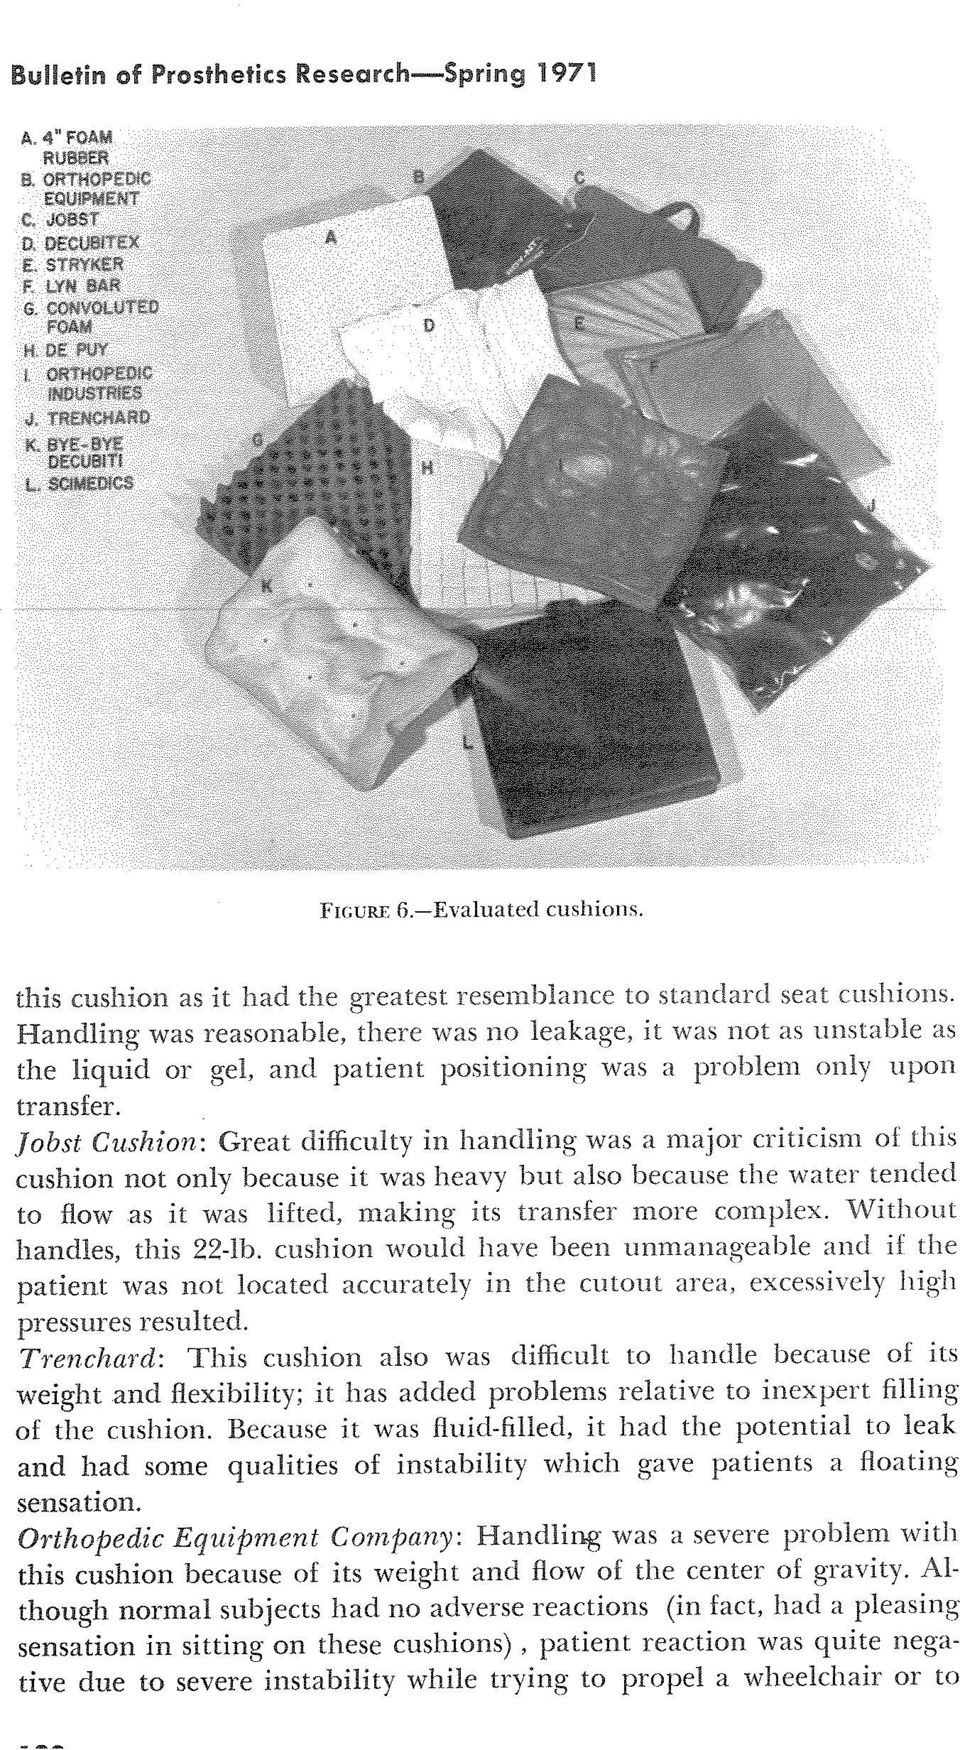 Jobst Cushion : Great difficulty in handling was a major criticism of this cushion not only because it was heavy but also because the water tended to flow as it was lifted, making its transfer more